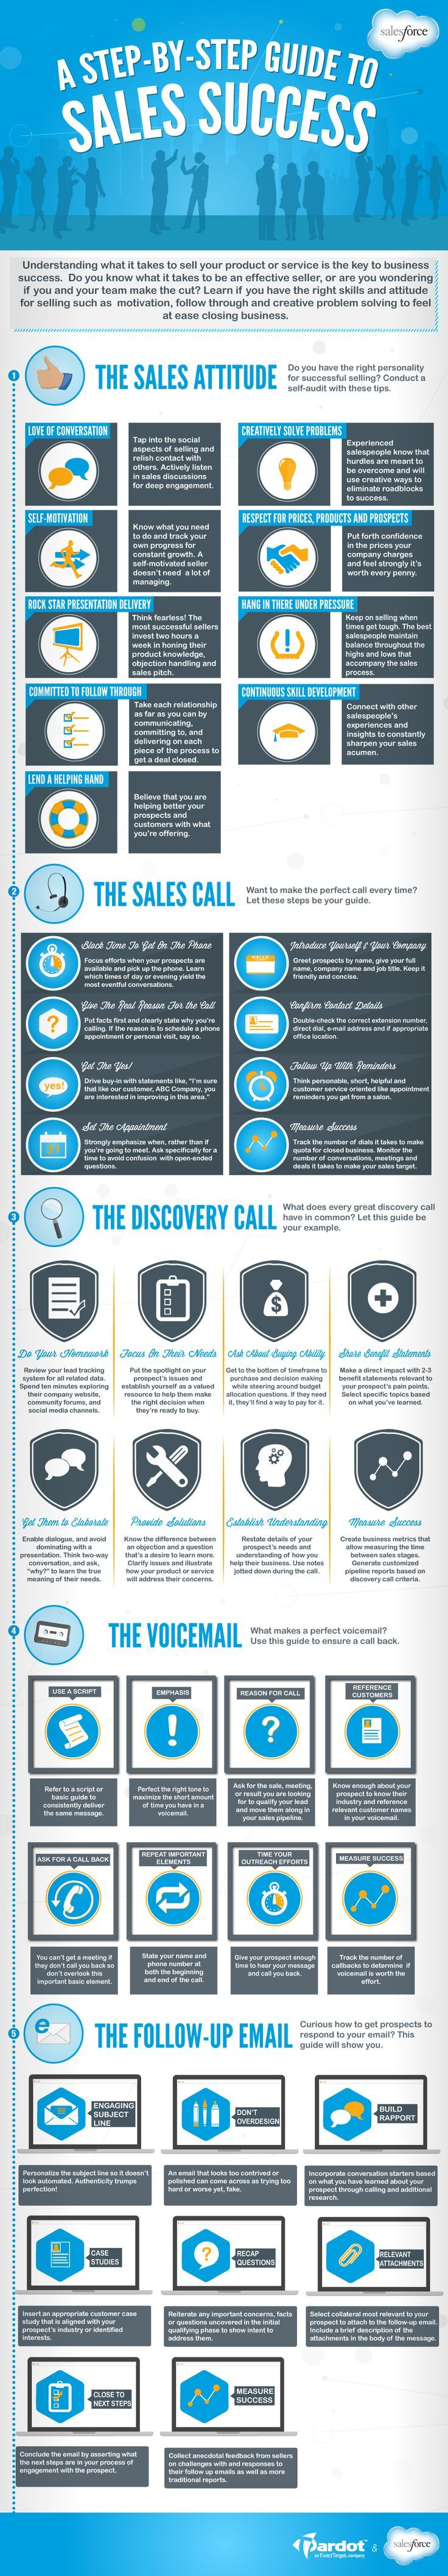 Read more tips for your RESUME on